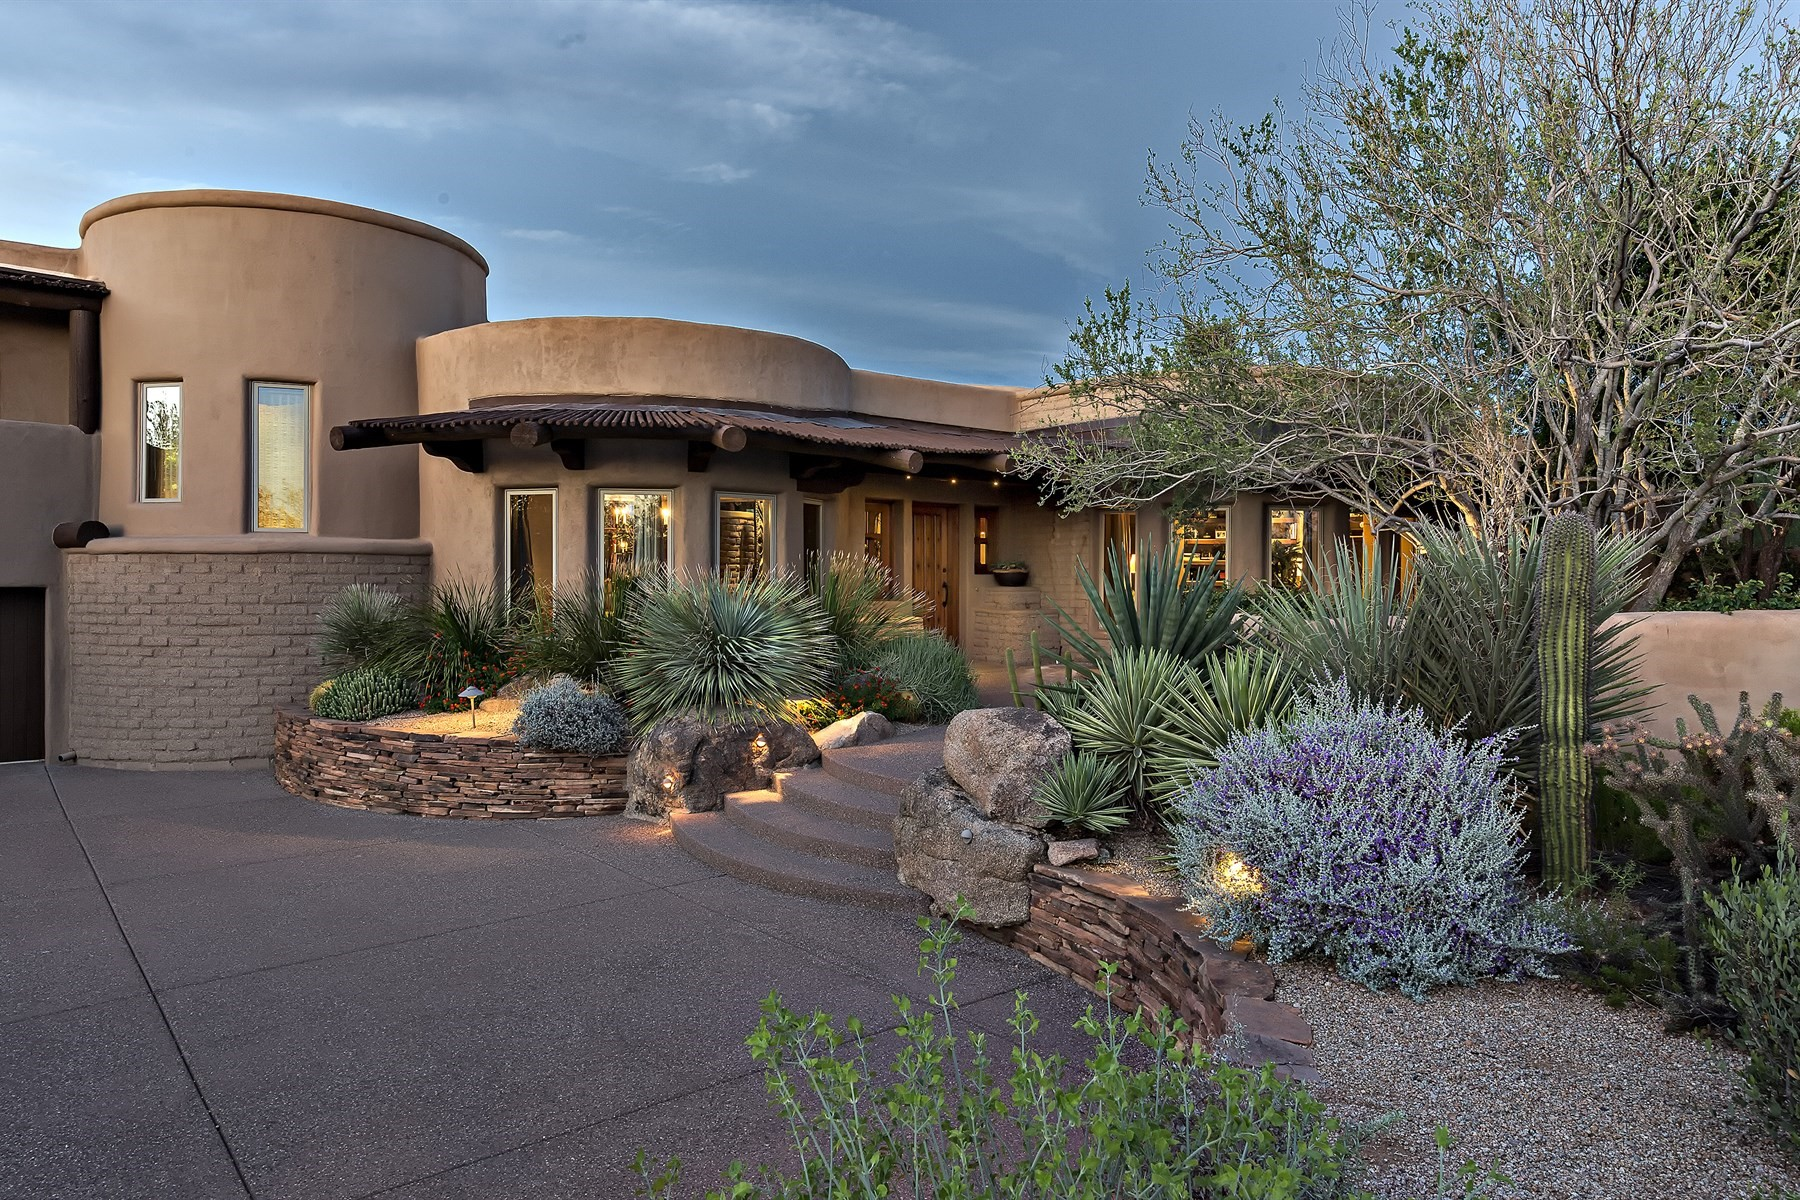 一戸建て のために 売買 アット True adobe style home overlooking the 3rd green at Estancia Golf Club 27621 N 96th Pl, Scottsdale, アリゾナ, 85262 アメリカ合衆国